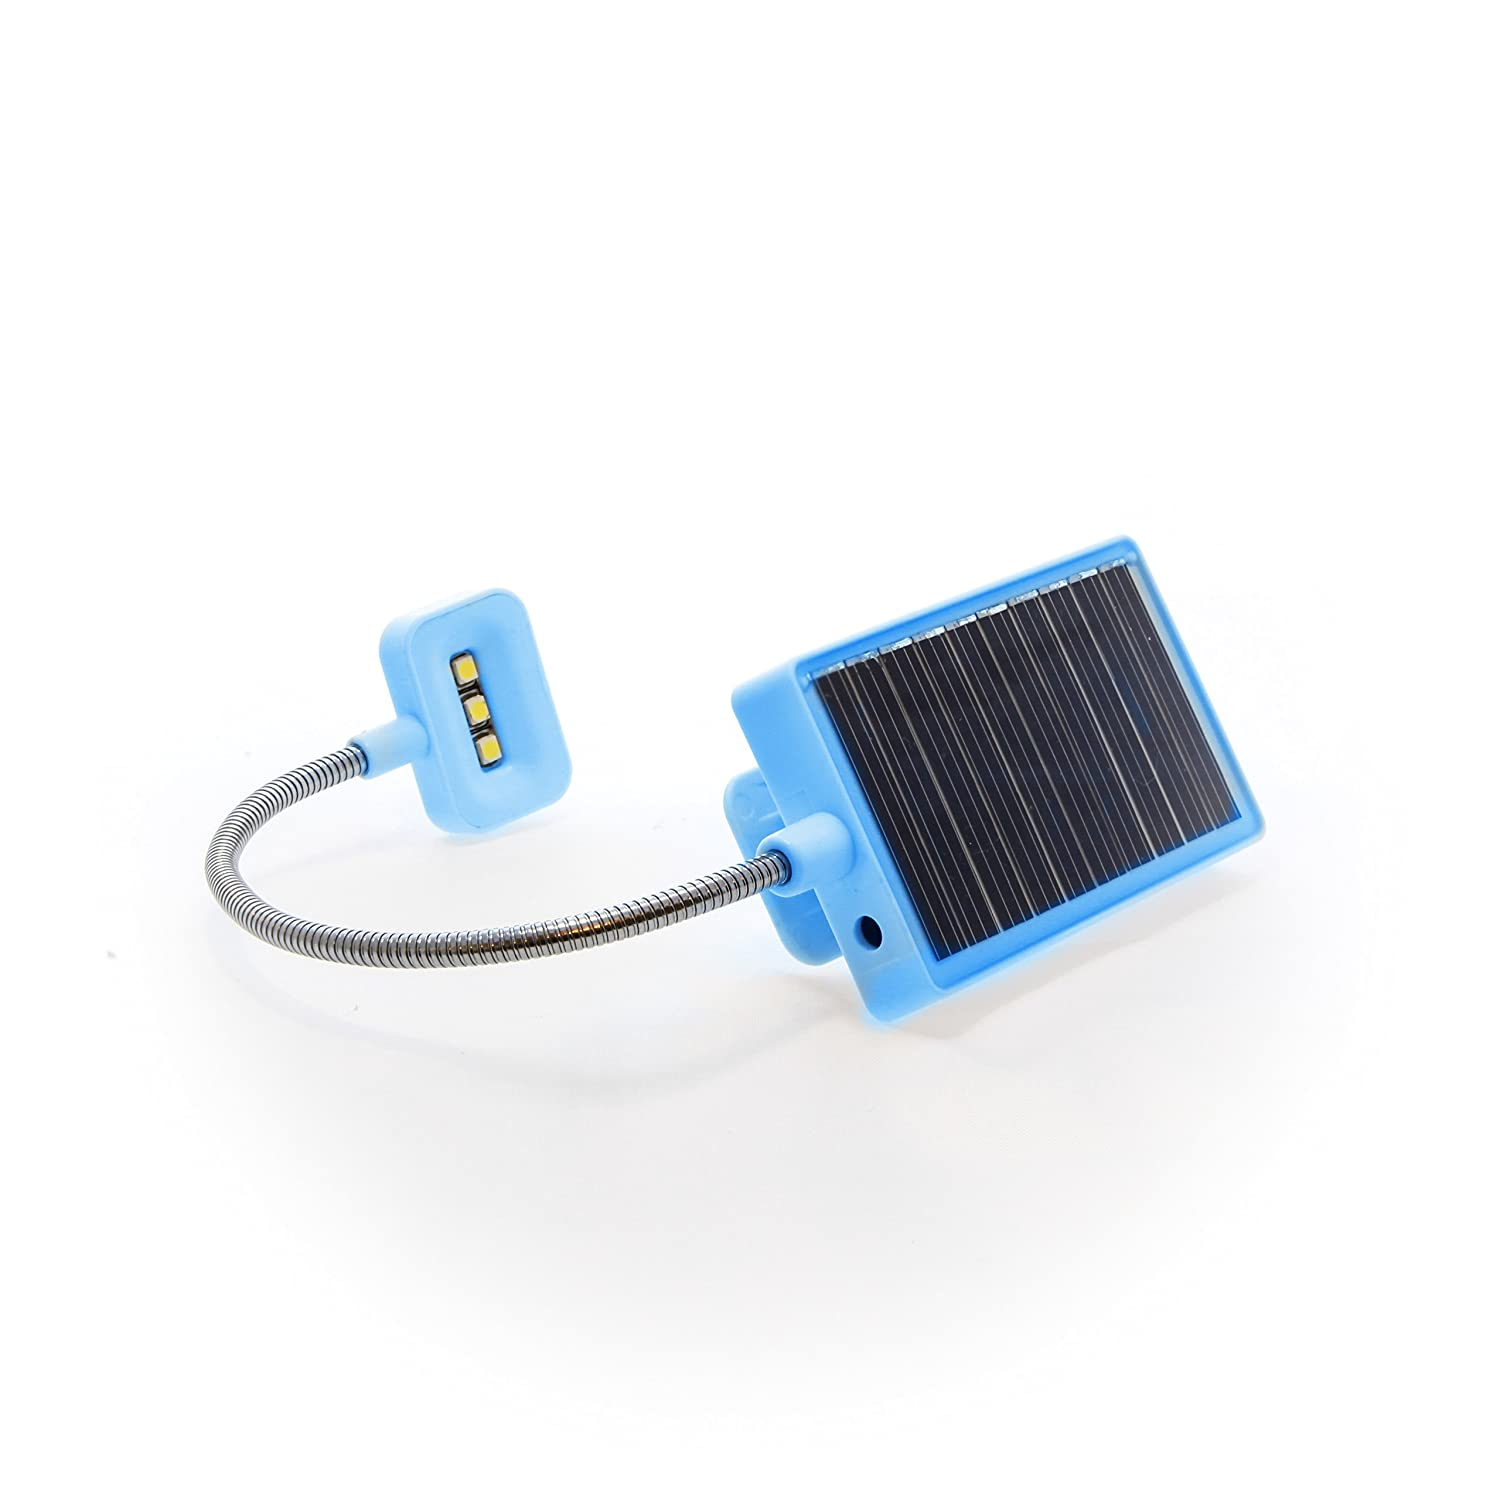 solar rechargeable book light ideal for reading in bed solar or